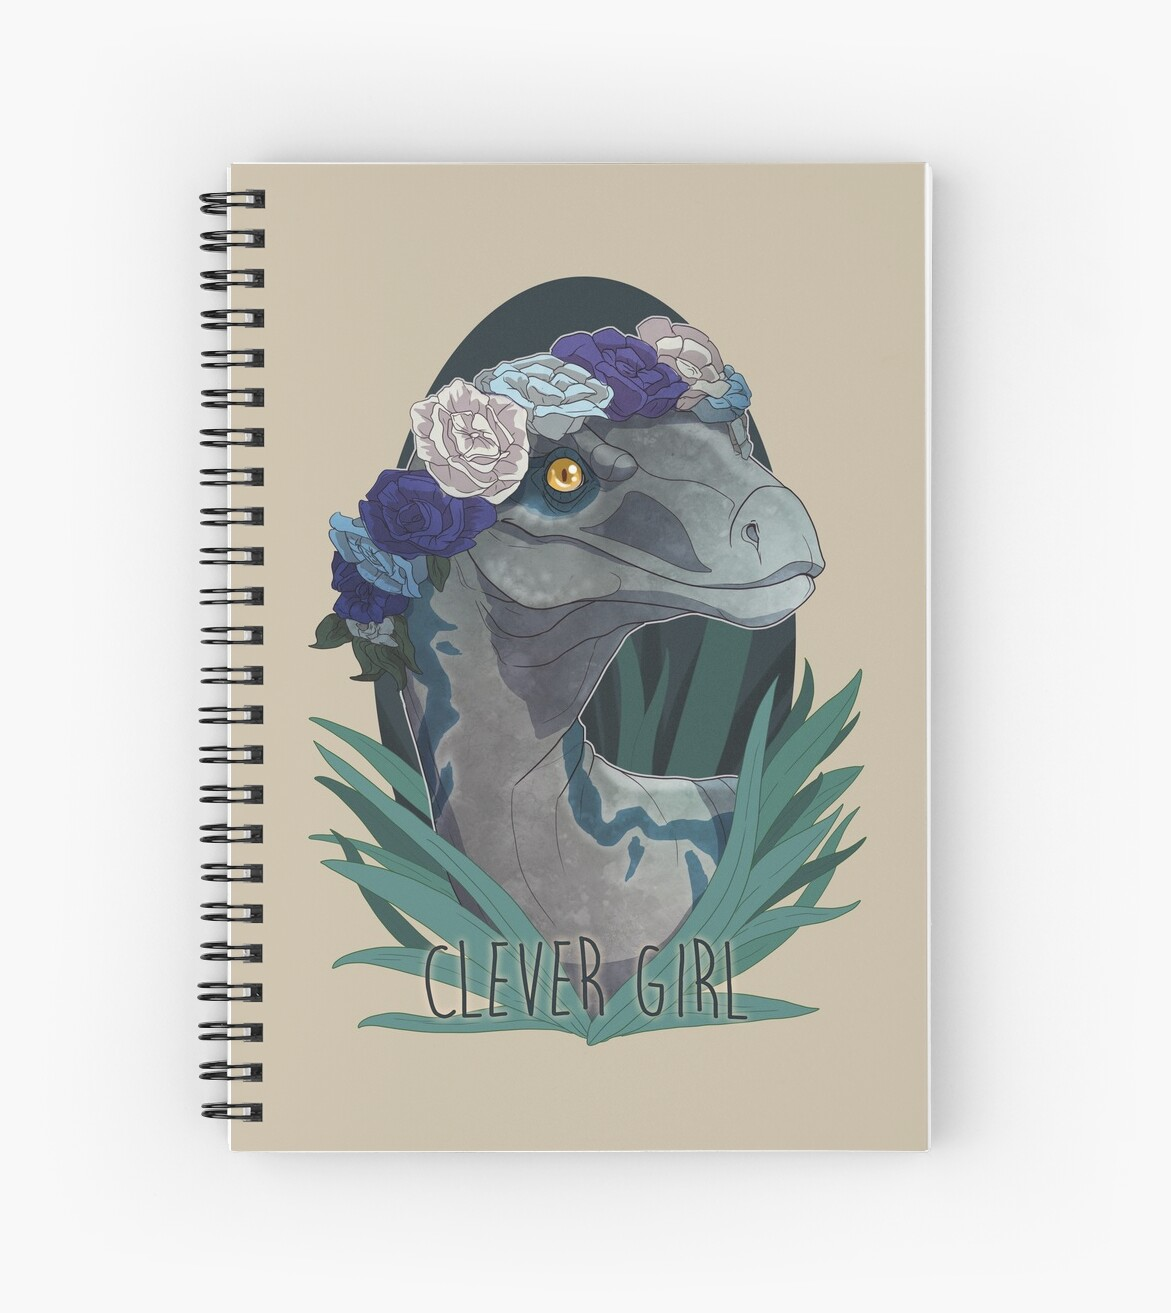 """Clever Girl Blue: """"Clever Girl - Blue"""" Spiral Notebooks By PencilCat"""